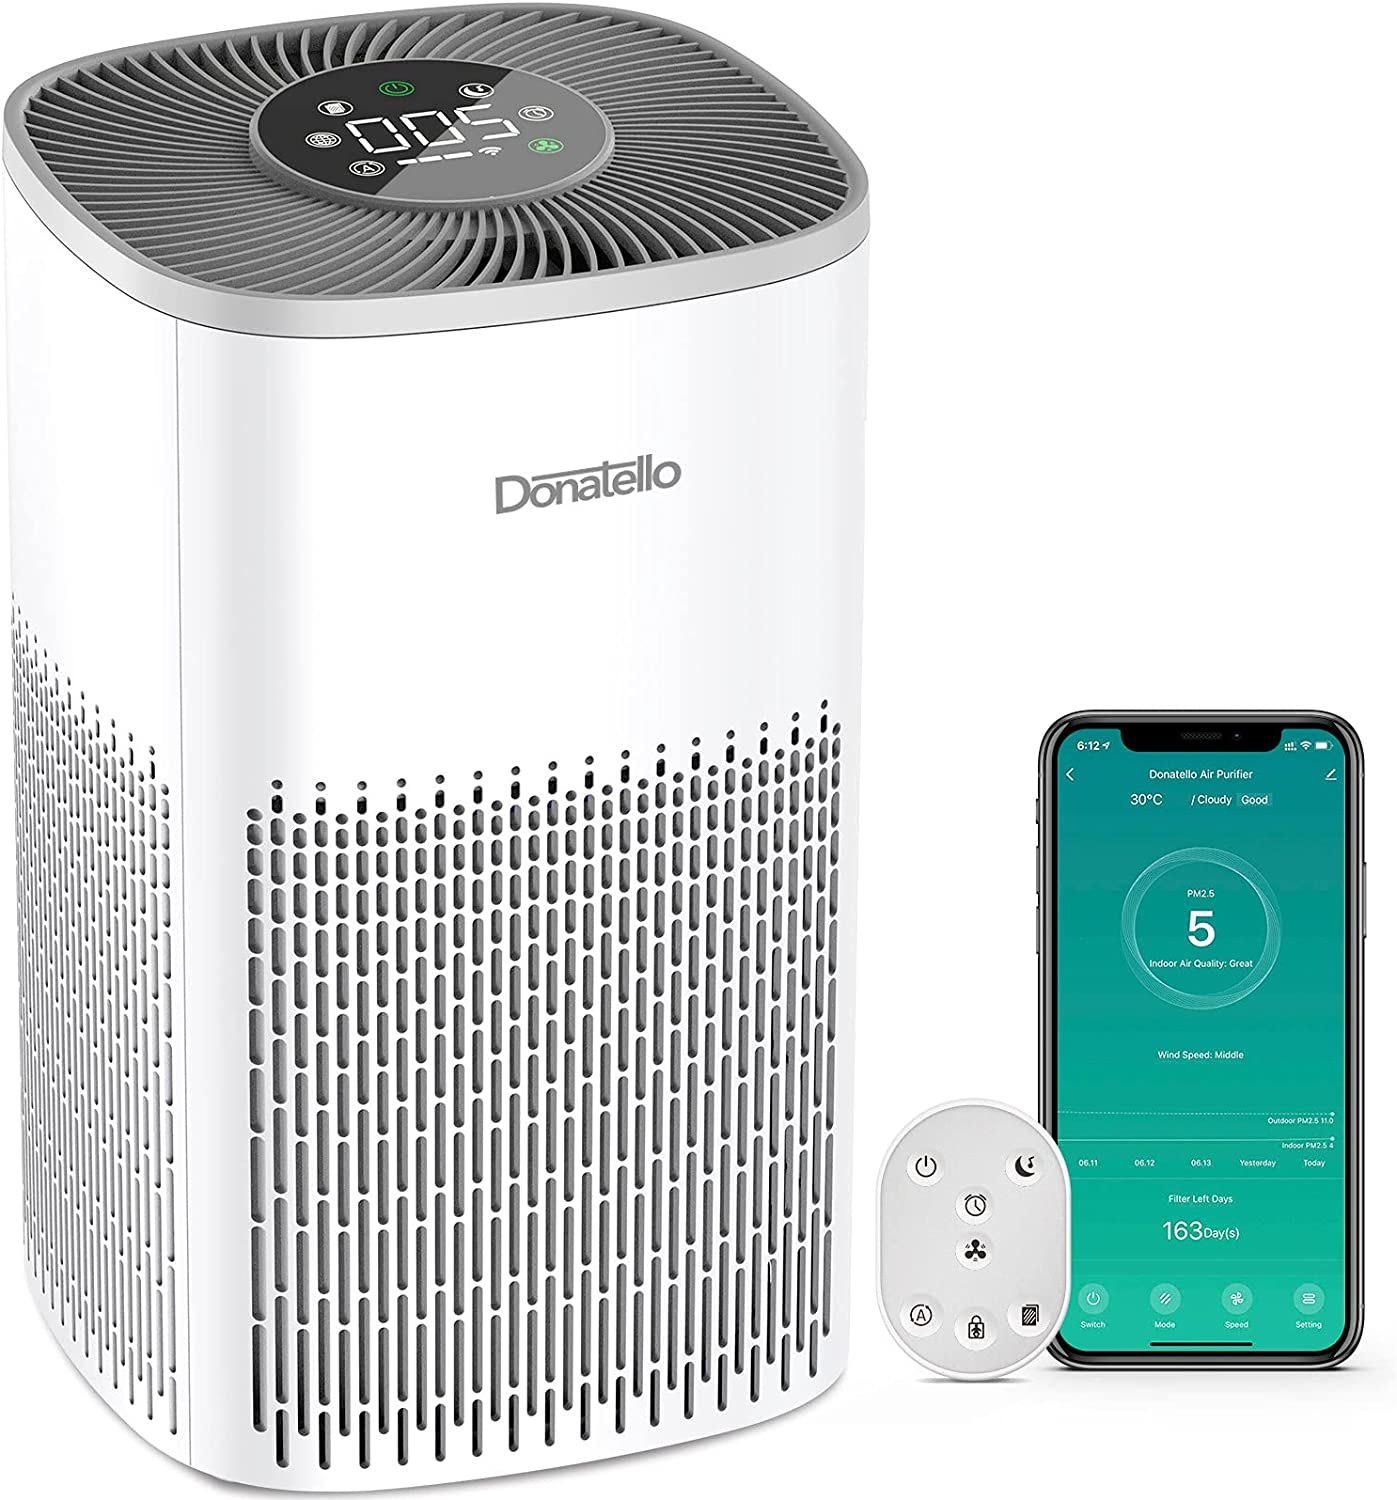 Donatello Smart Quantity limited Air Purifiers Popular popular for sq.ft Enabled Alexa Home 387